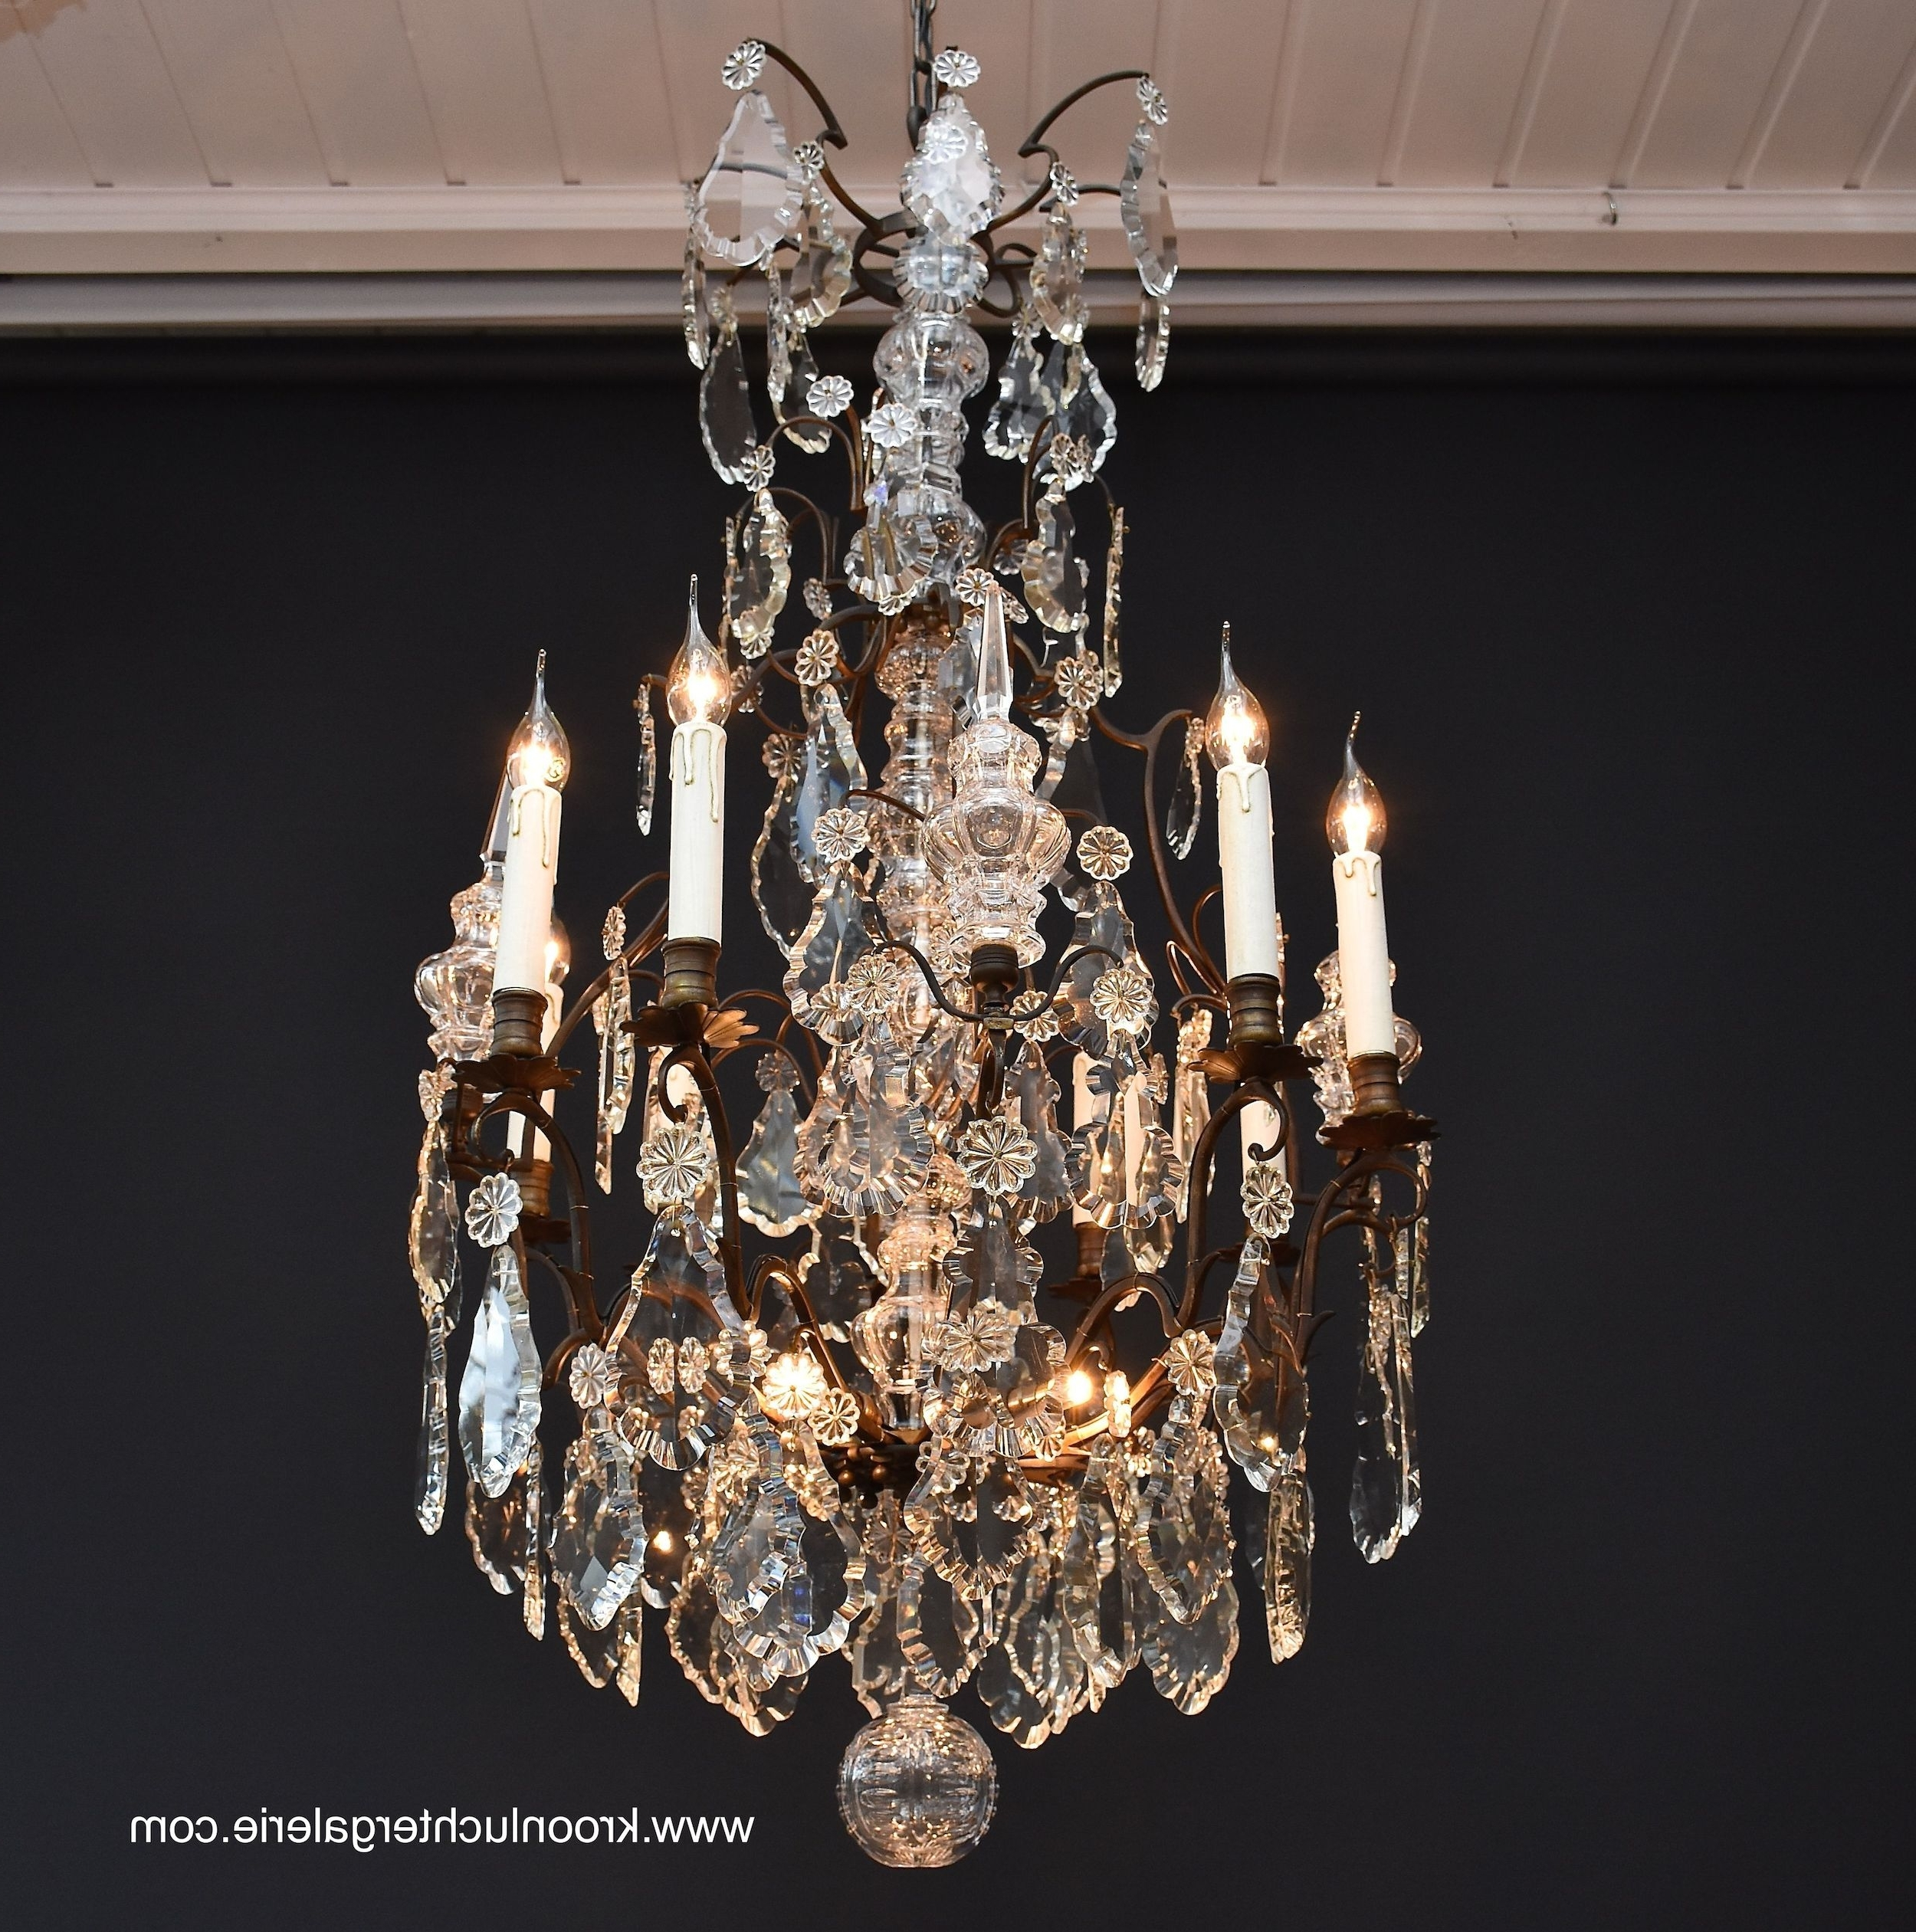 19Th Century French Crystal Chandelier, Ref. 591A » French Regarding Fashionable French Crystal Chandeliers (Gallery 7 of 15)